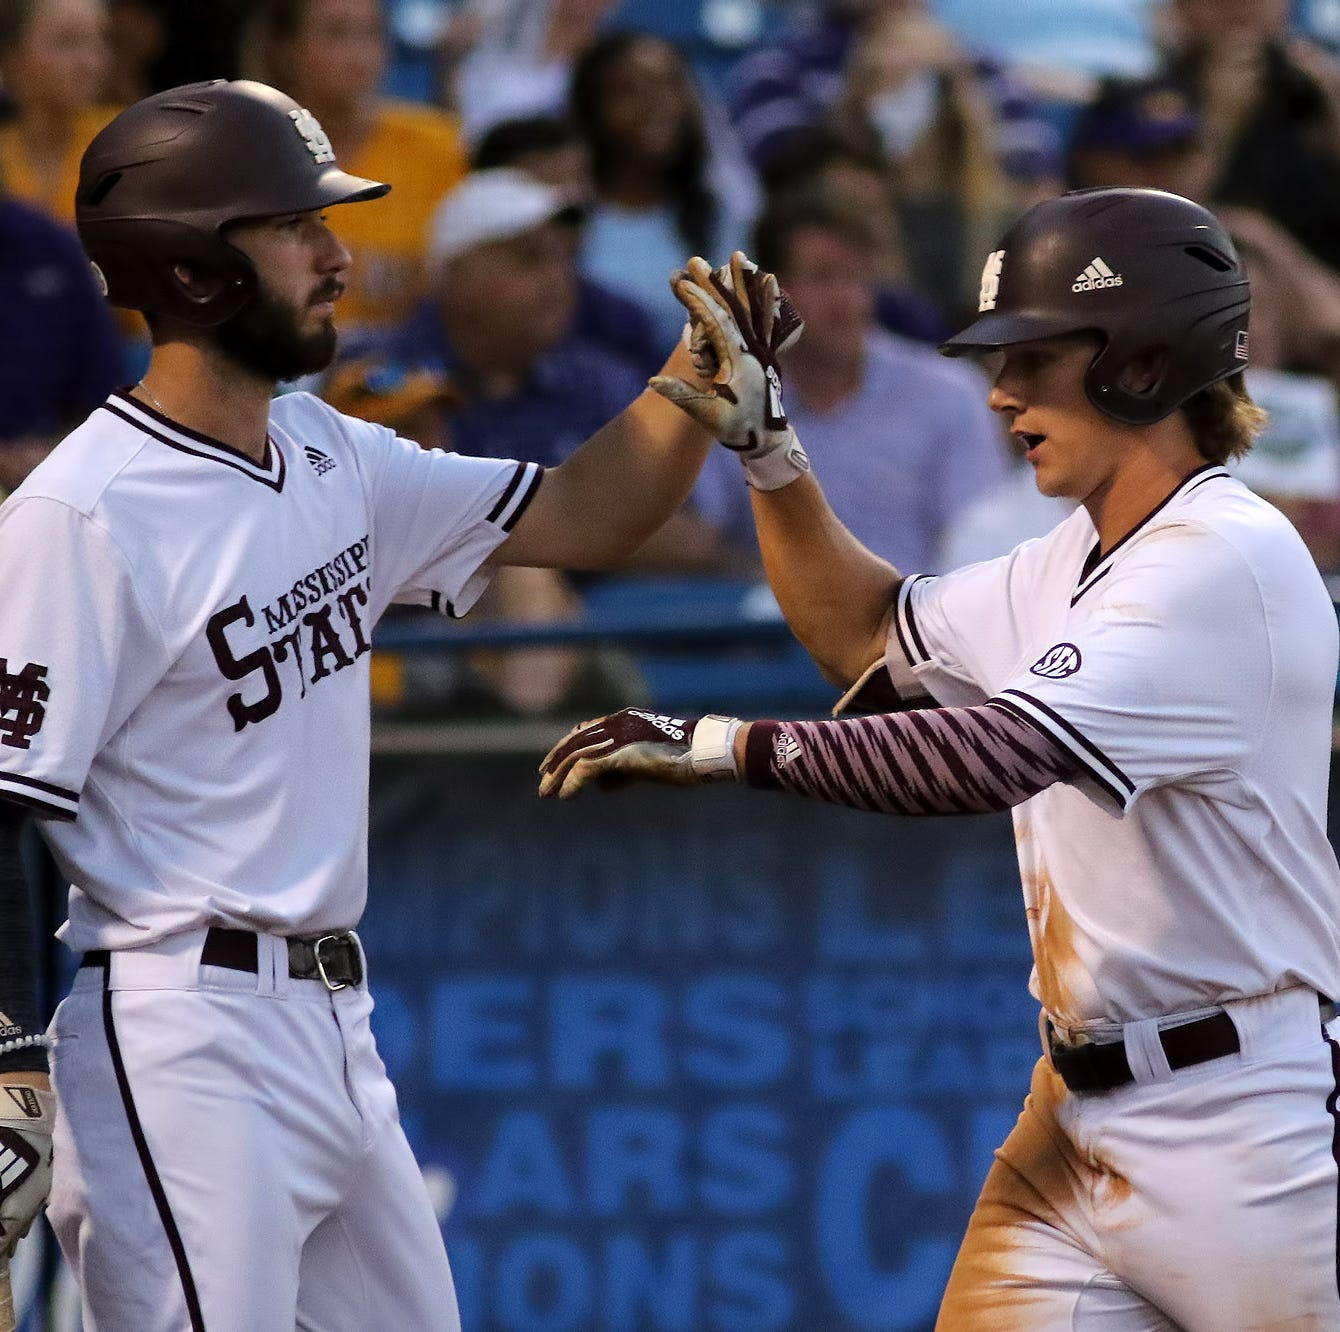 'No panic': Why Mississippi State baseball feels fine in spite of shaky SEC Tournament run